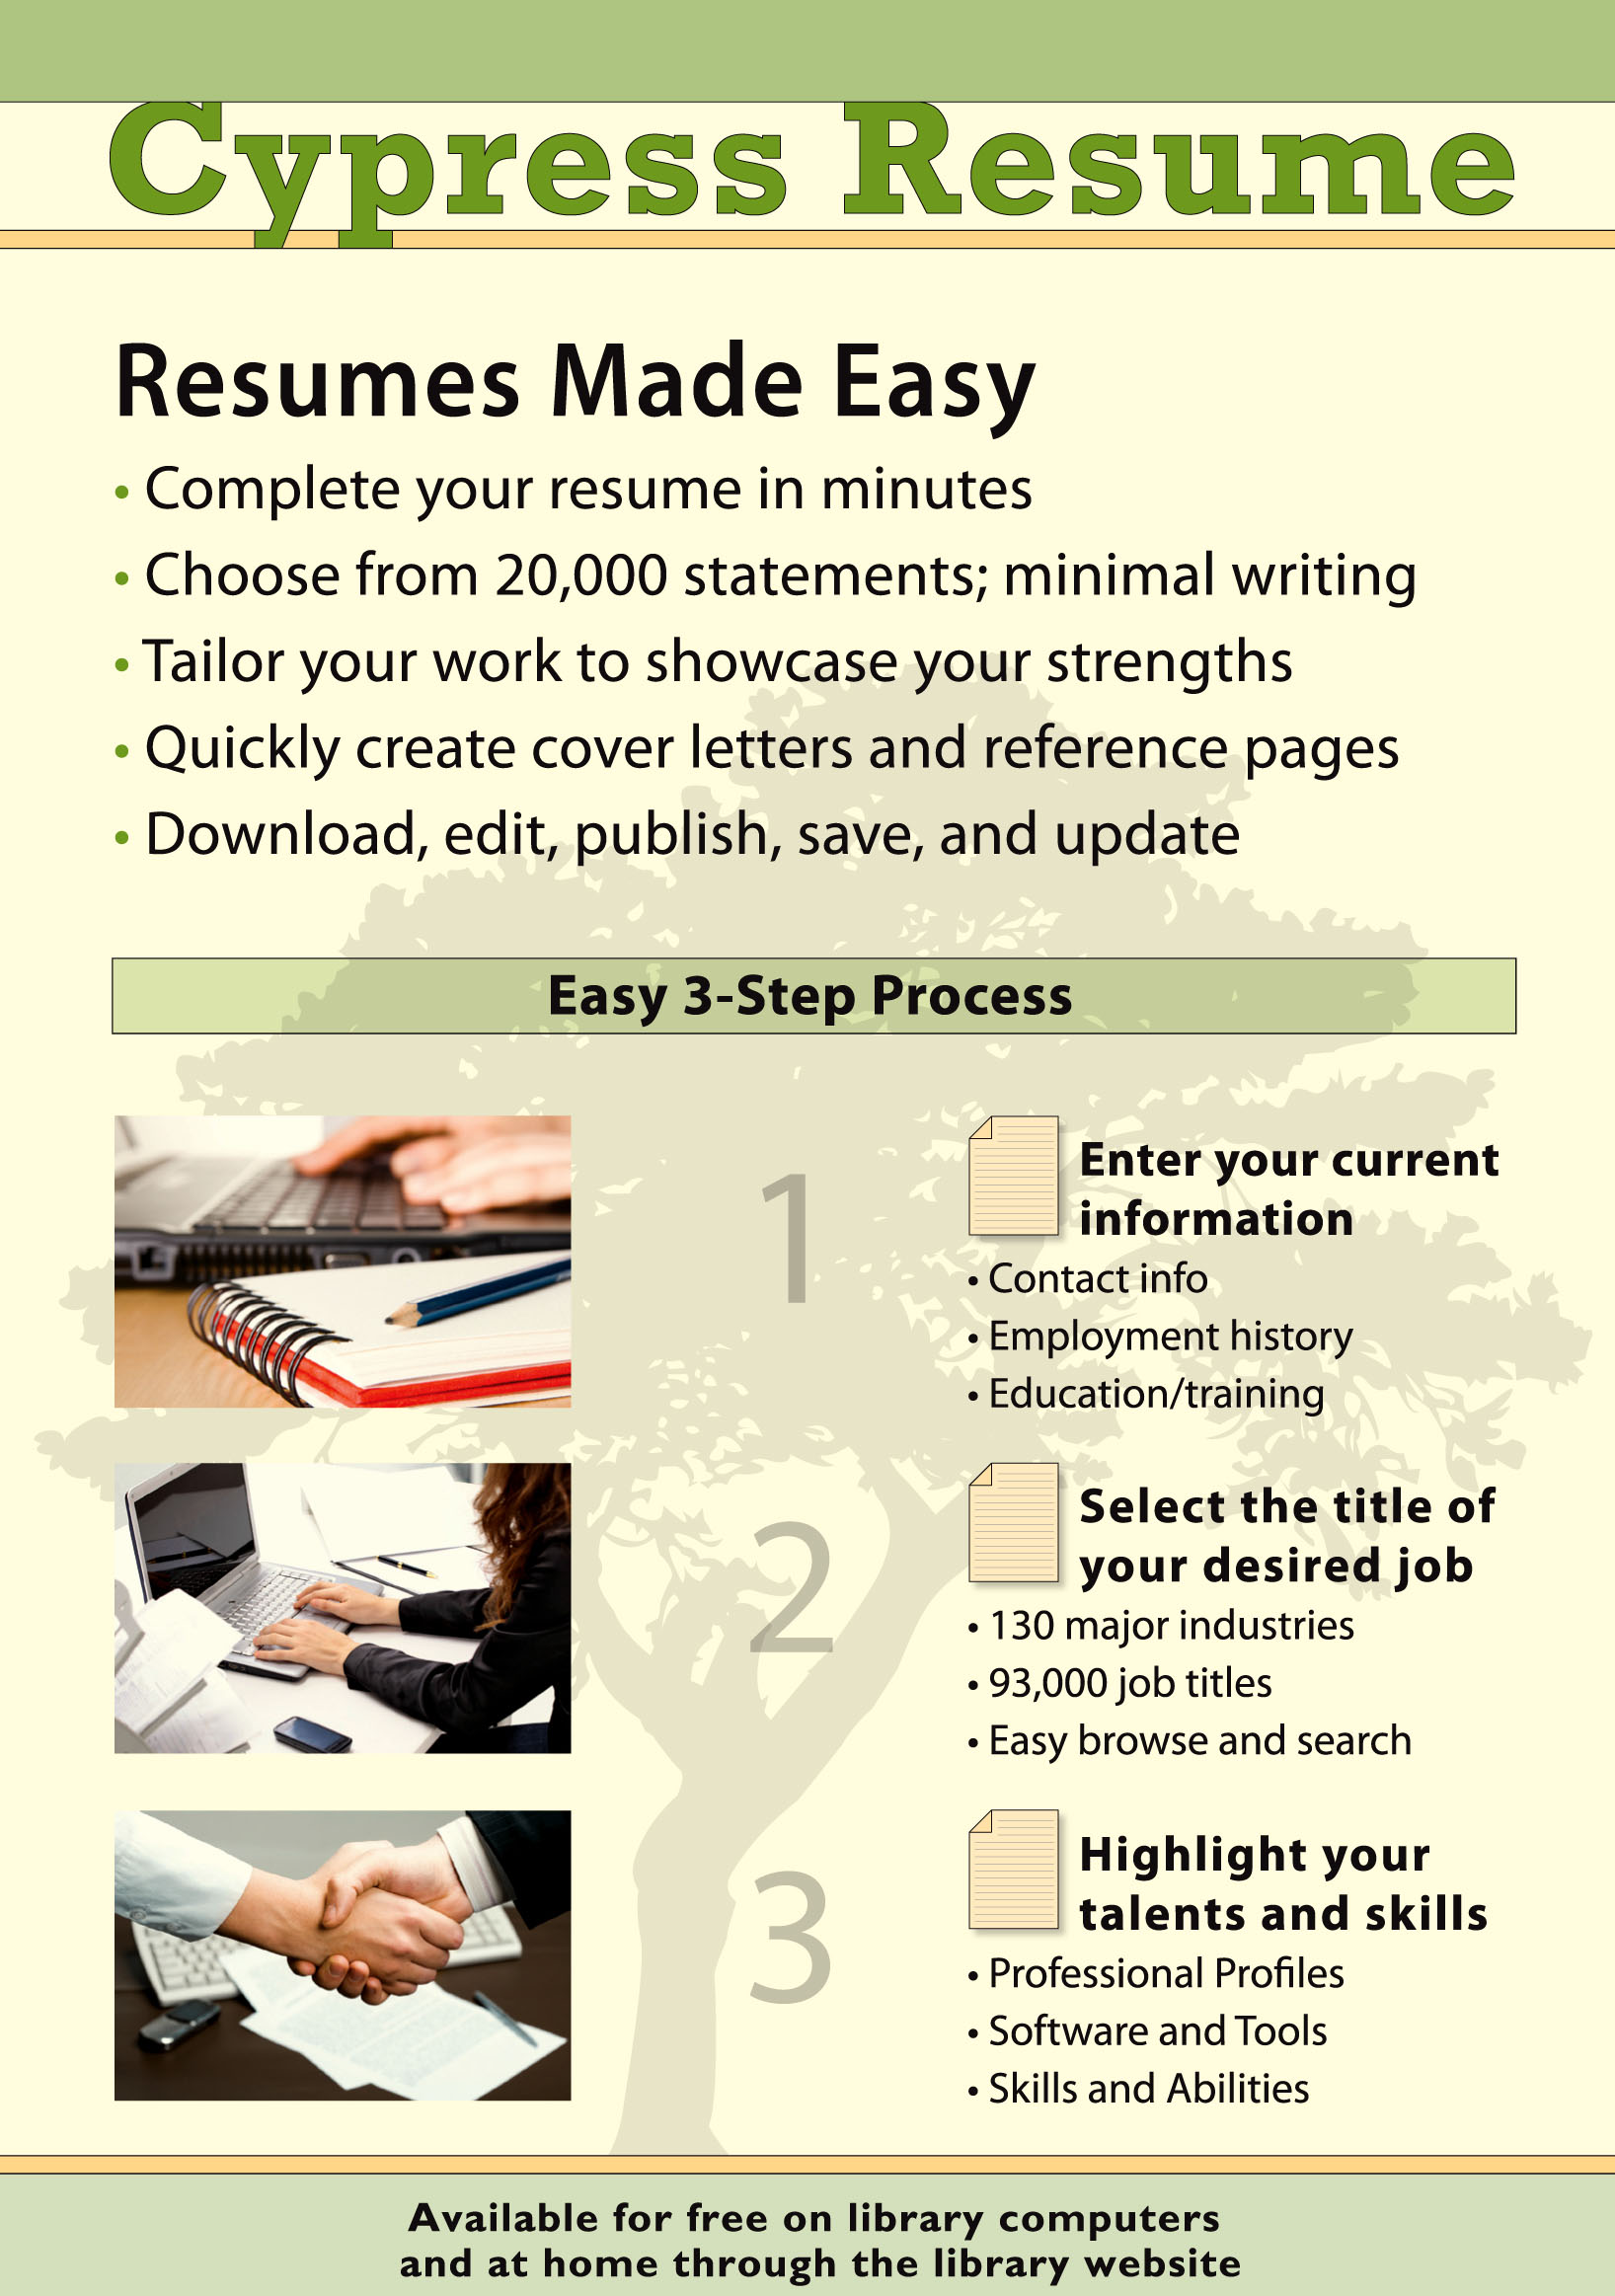 Cypress Resume Flyer